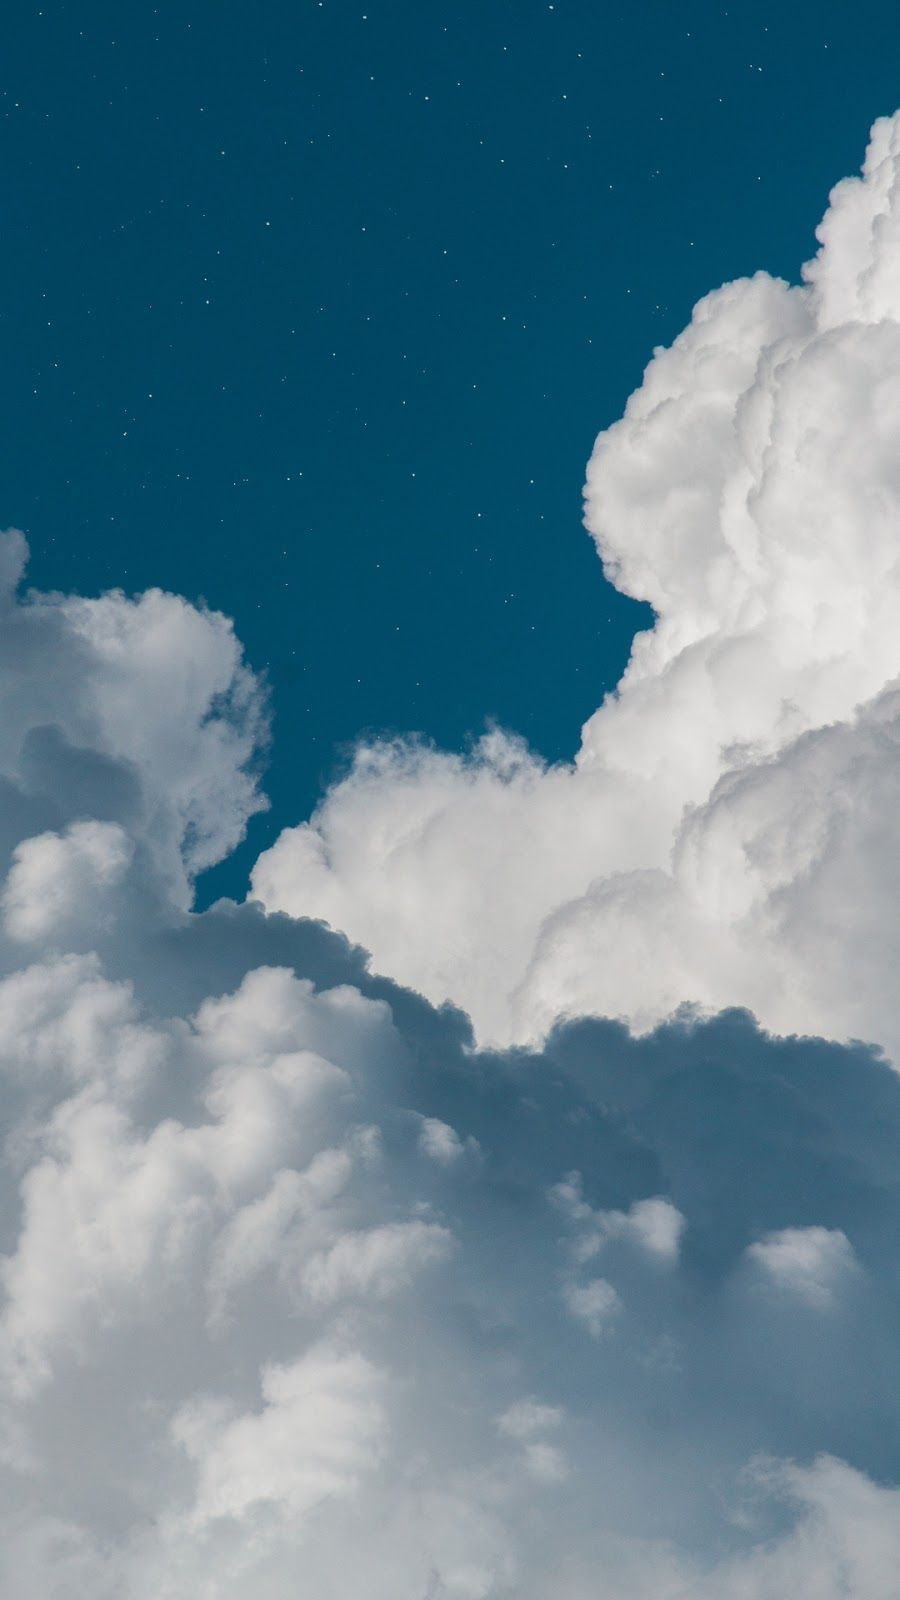 Fluffy Clouds Wallpaper Iphone Android Background Followme Cloud Wallpaper Clouds Wallpaper Iphone Sky Aesthetic